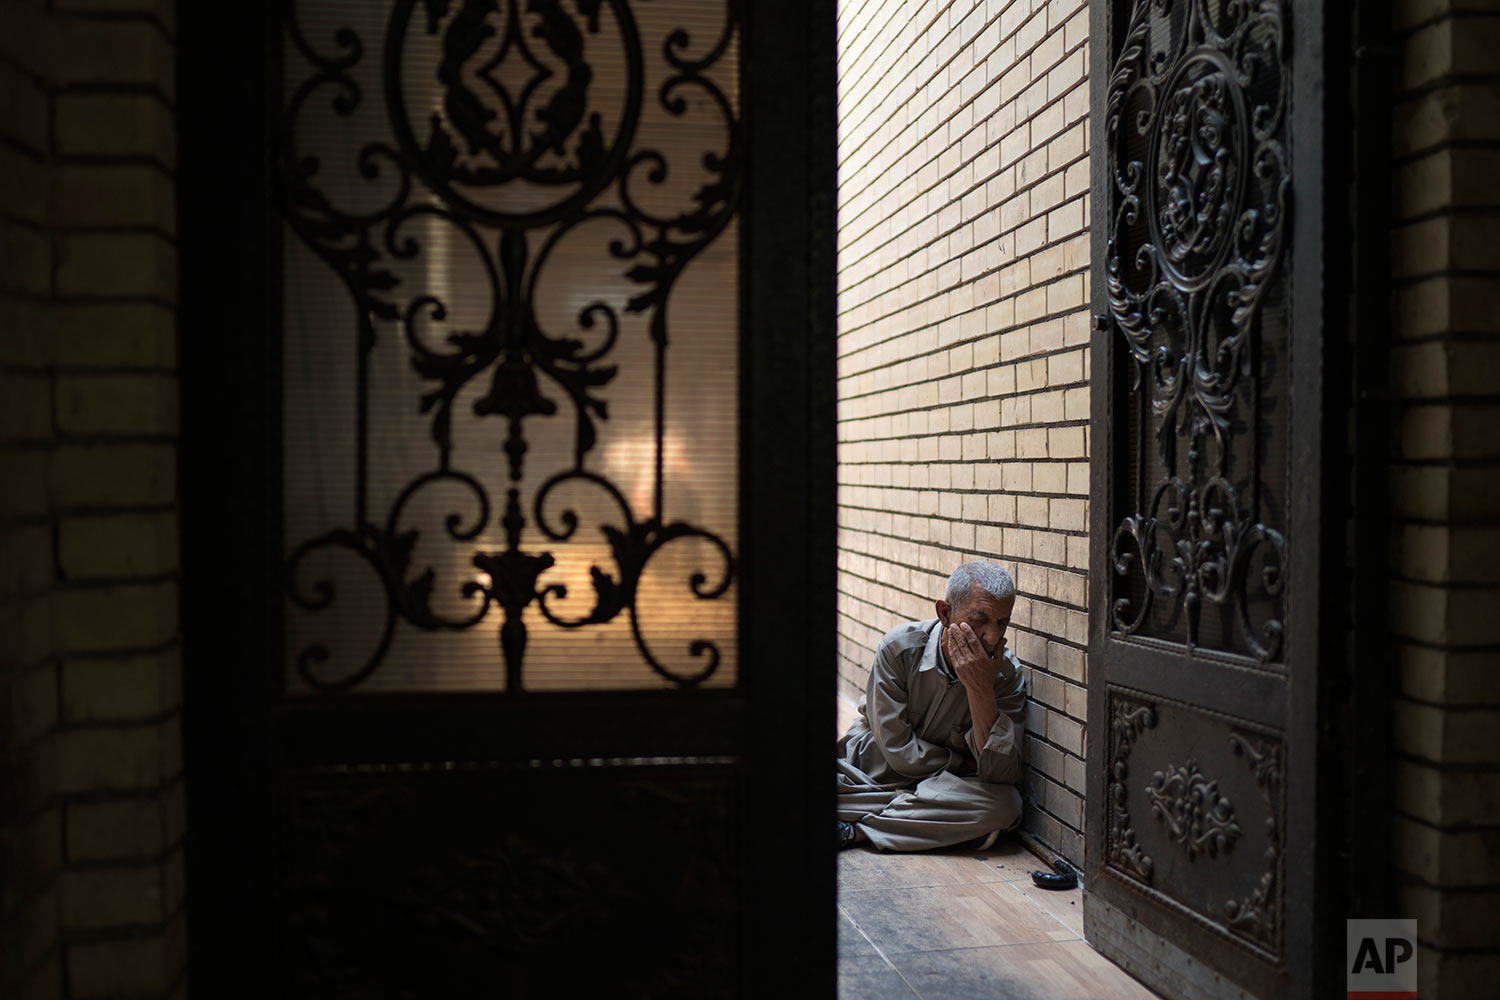 A man sits at the entrance of a mosque in central Irbil, Iraq, Wednesday, Oct. 25, 2017. In Sept. 2017, Iraq's Kurds celebrated their symbolic vote for independence, but instead of moving forward with negotiations toward a smooth divorce from Baghdad, they have lost their most important oil-producing city to Iraqi troops, squeezing a hurting economy and dashing the hopes of an independent state. (AP Photo/Felipe Dana)